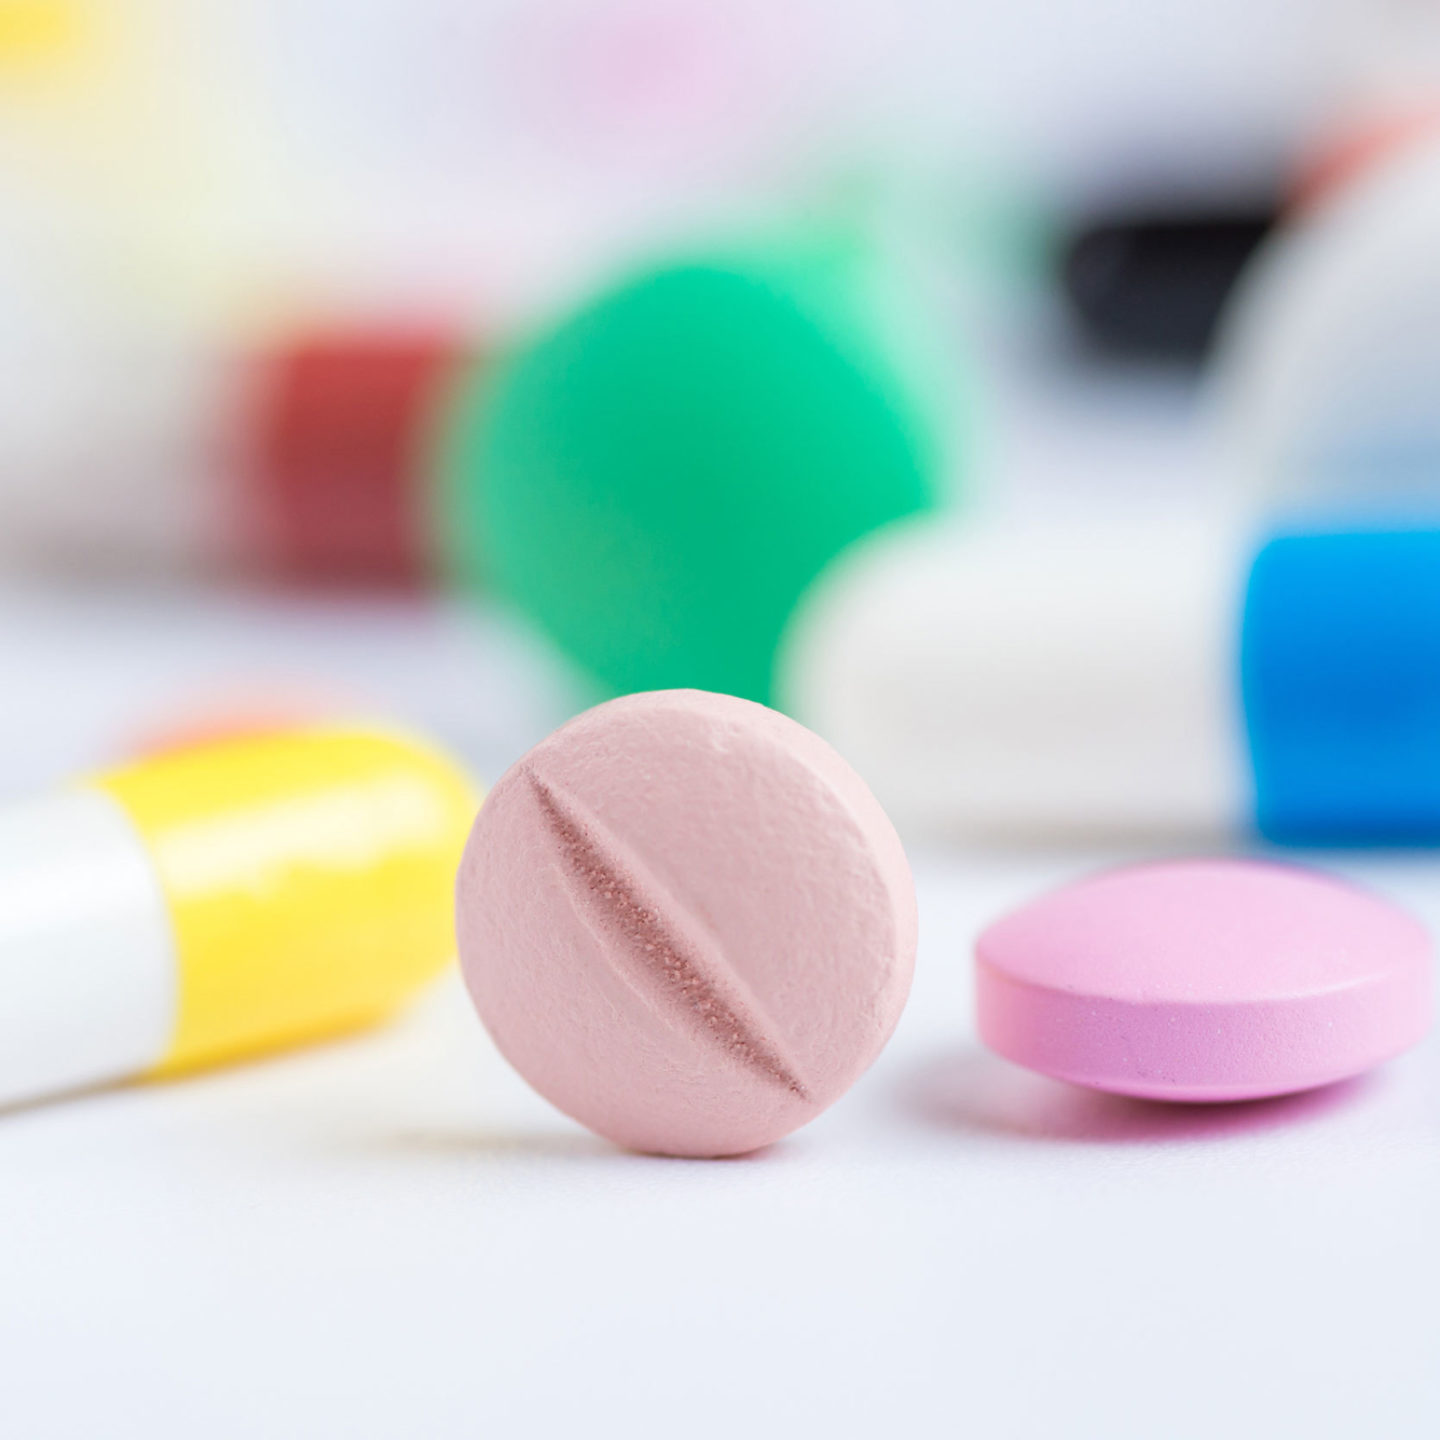 Green, pink, blue and yellow pills or capsules on a white background